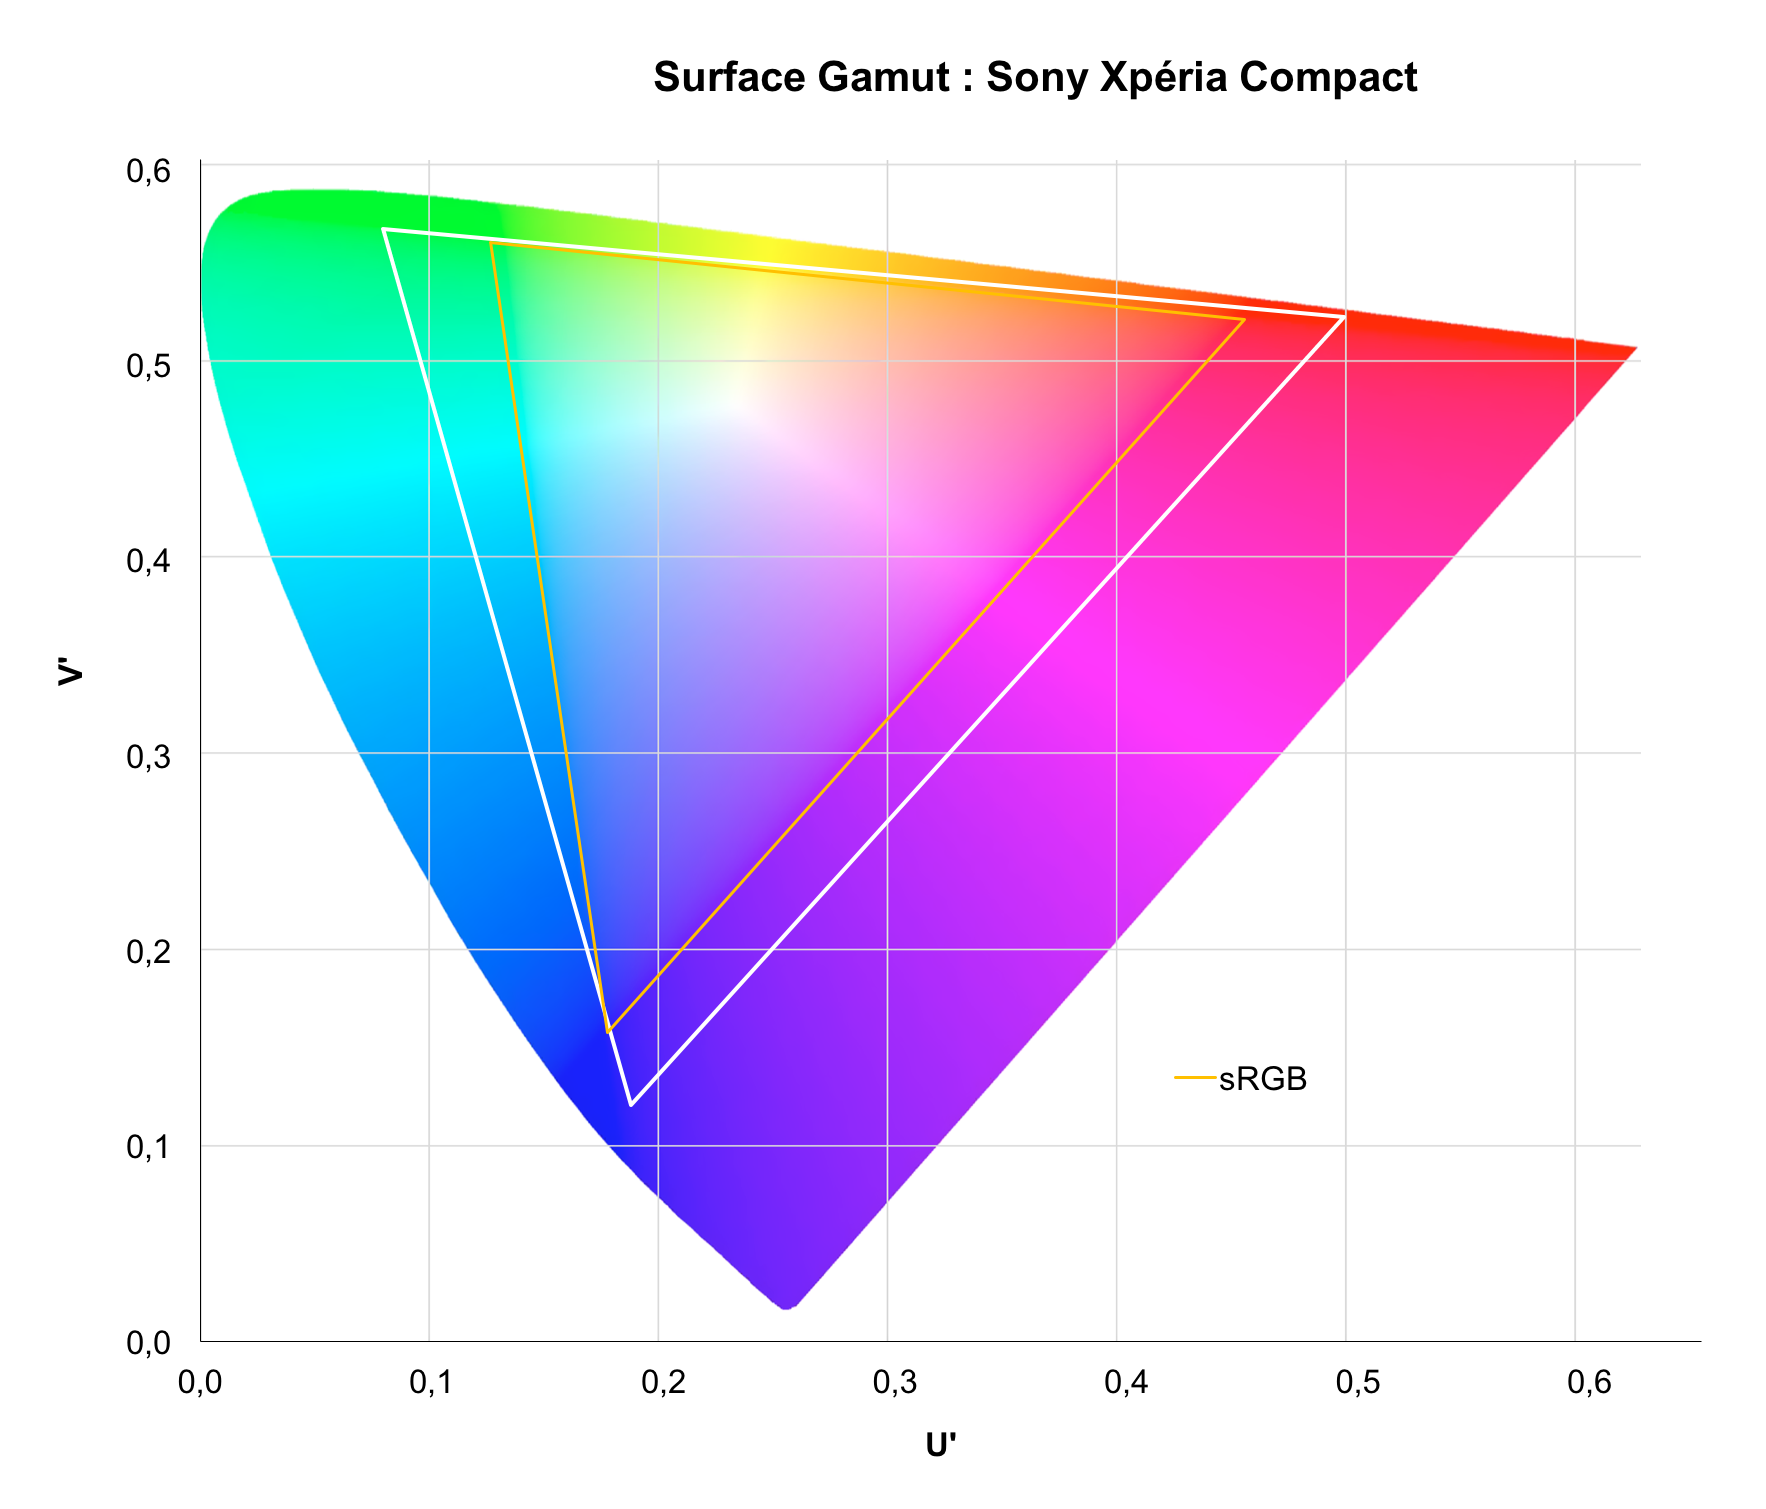 sony xperia compact gamut